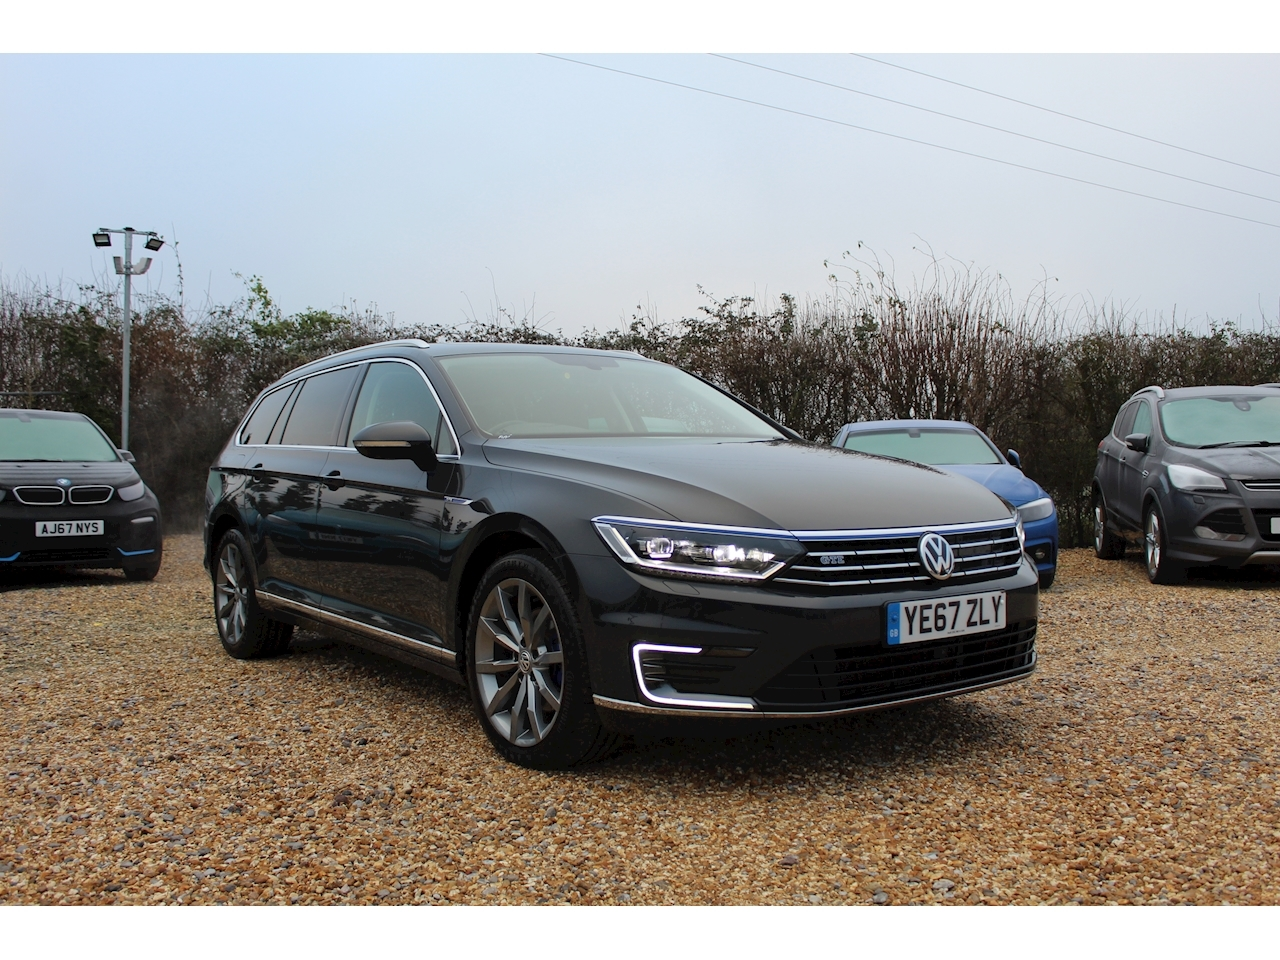 Volkswagen 1.4 TSI GTE Advance Estate 5dr Petrol Plug-in Hybrid DSG (s/s) (218 ps)